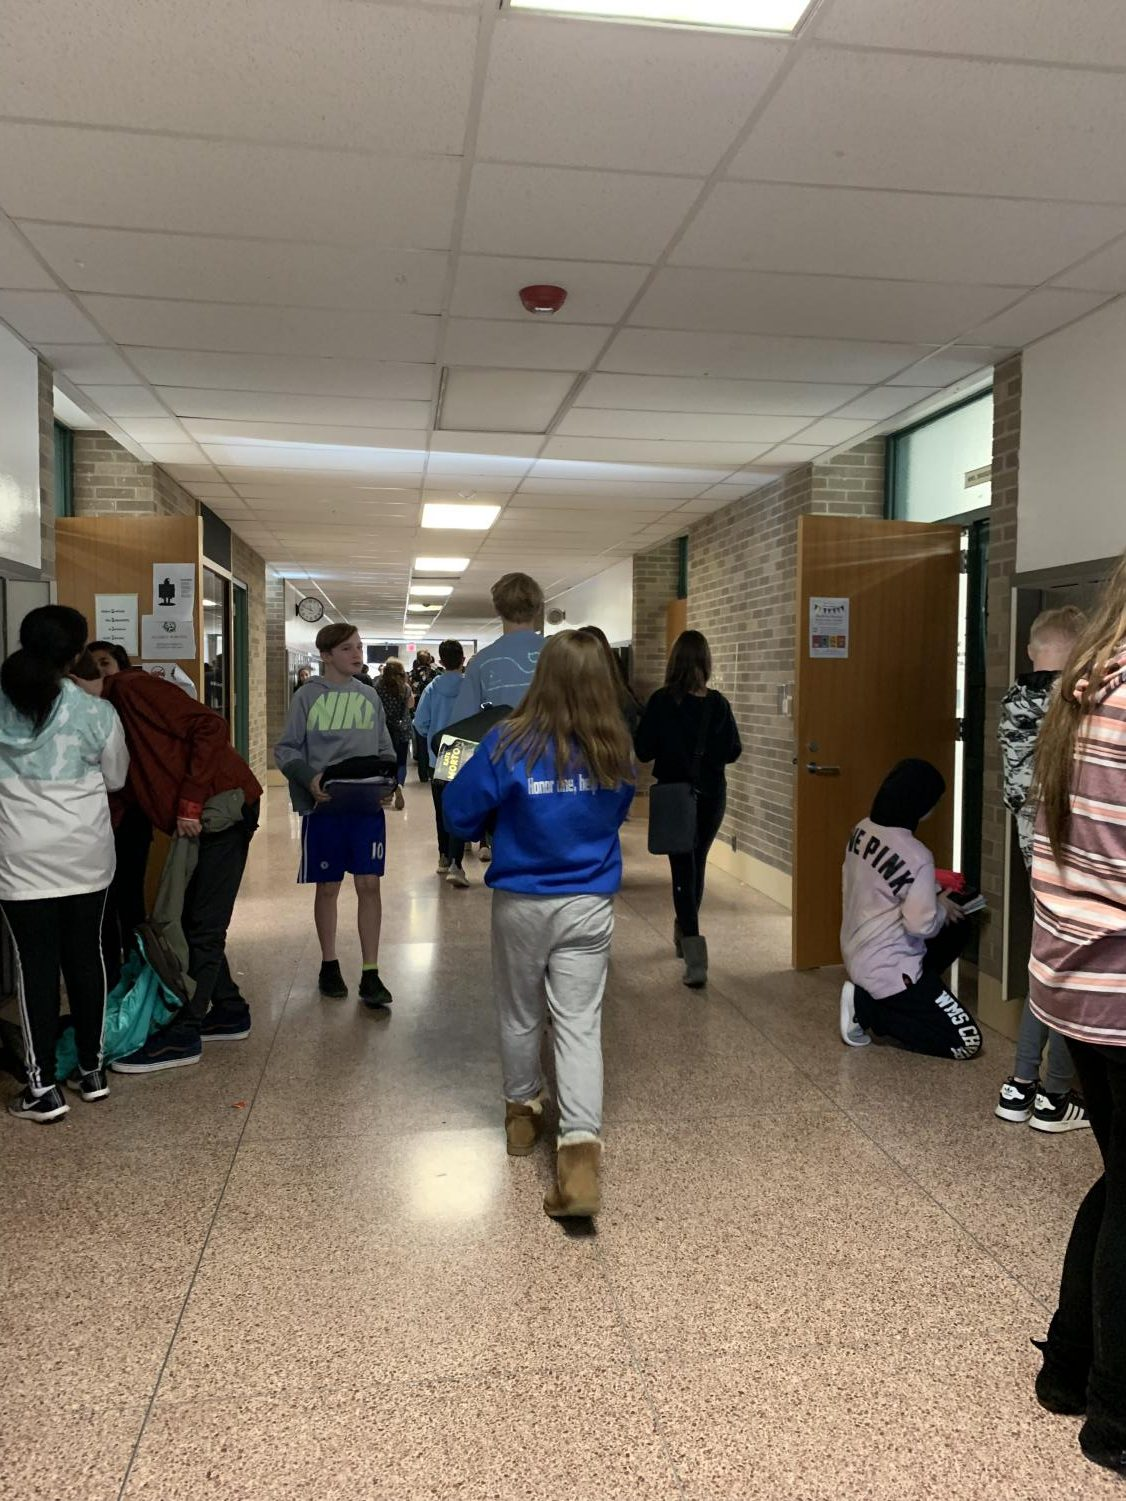 Students during passing time in C-Wing hallway.